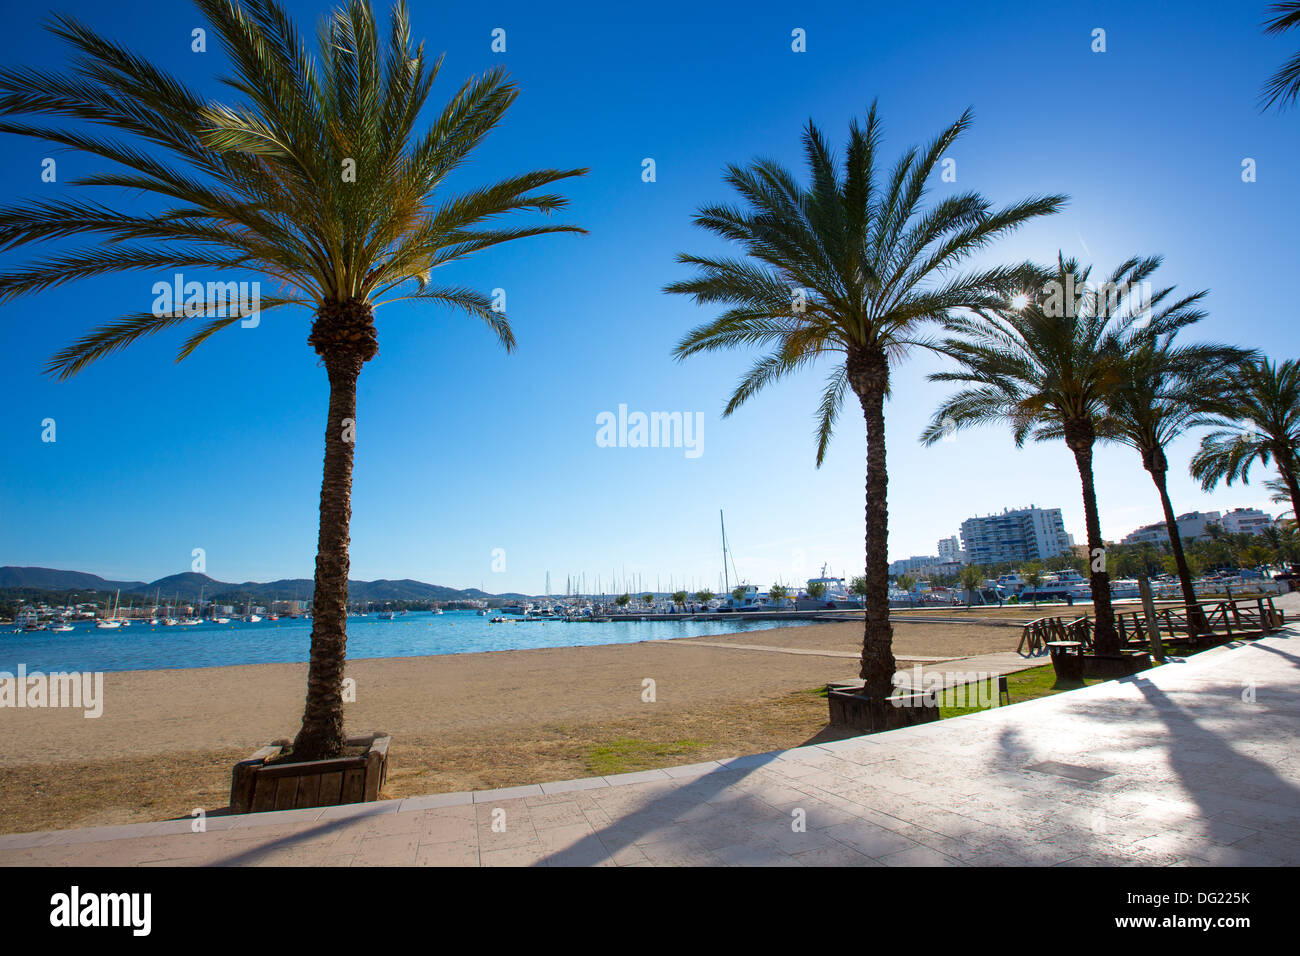 Ibiza San Antonio Abad De Portmany Beach In Balearic Islands Of Spain Stock Photo Alamy